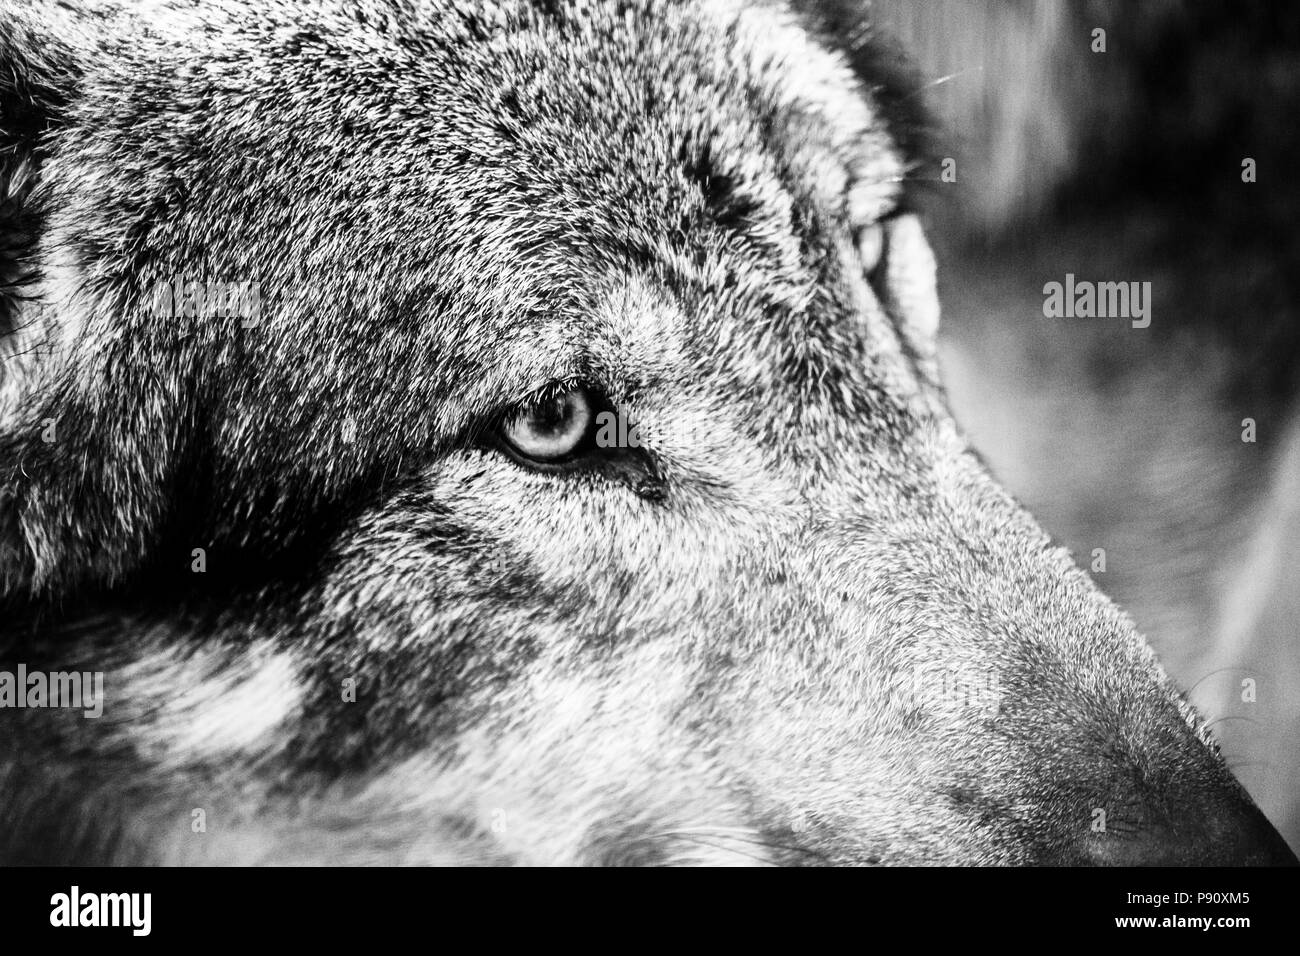 Black and white portrait of a wolf stock photo 212077269 alamy